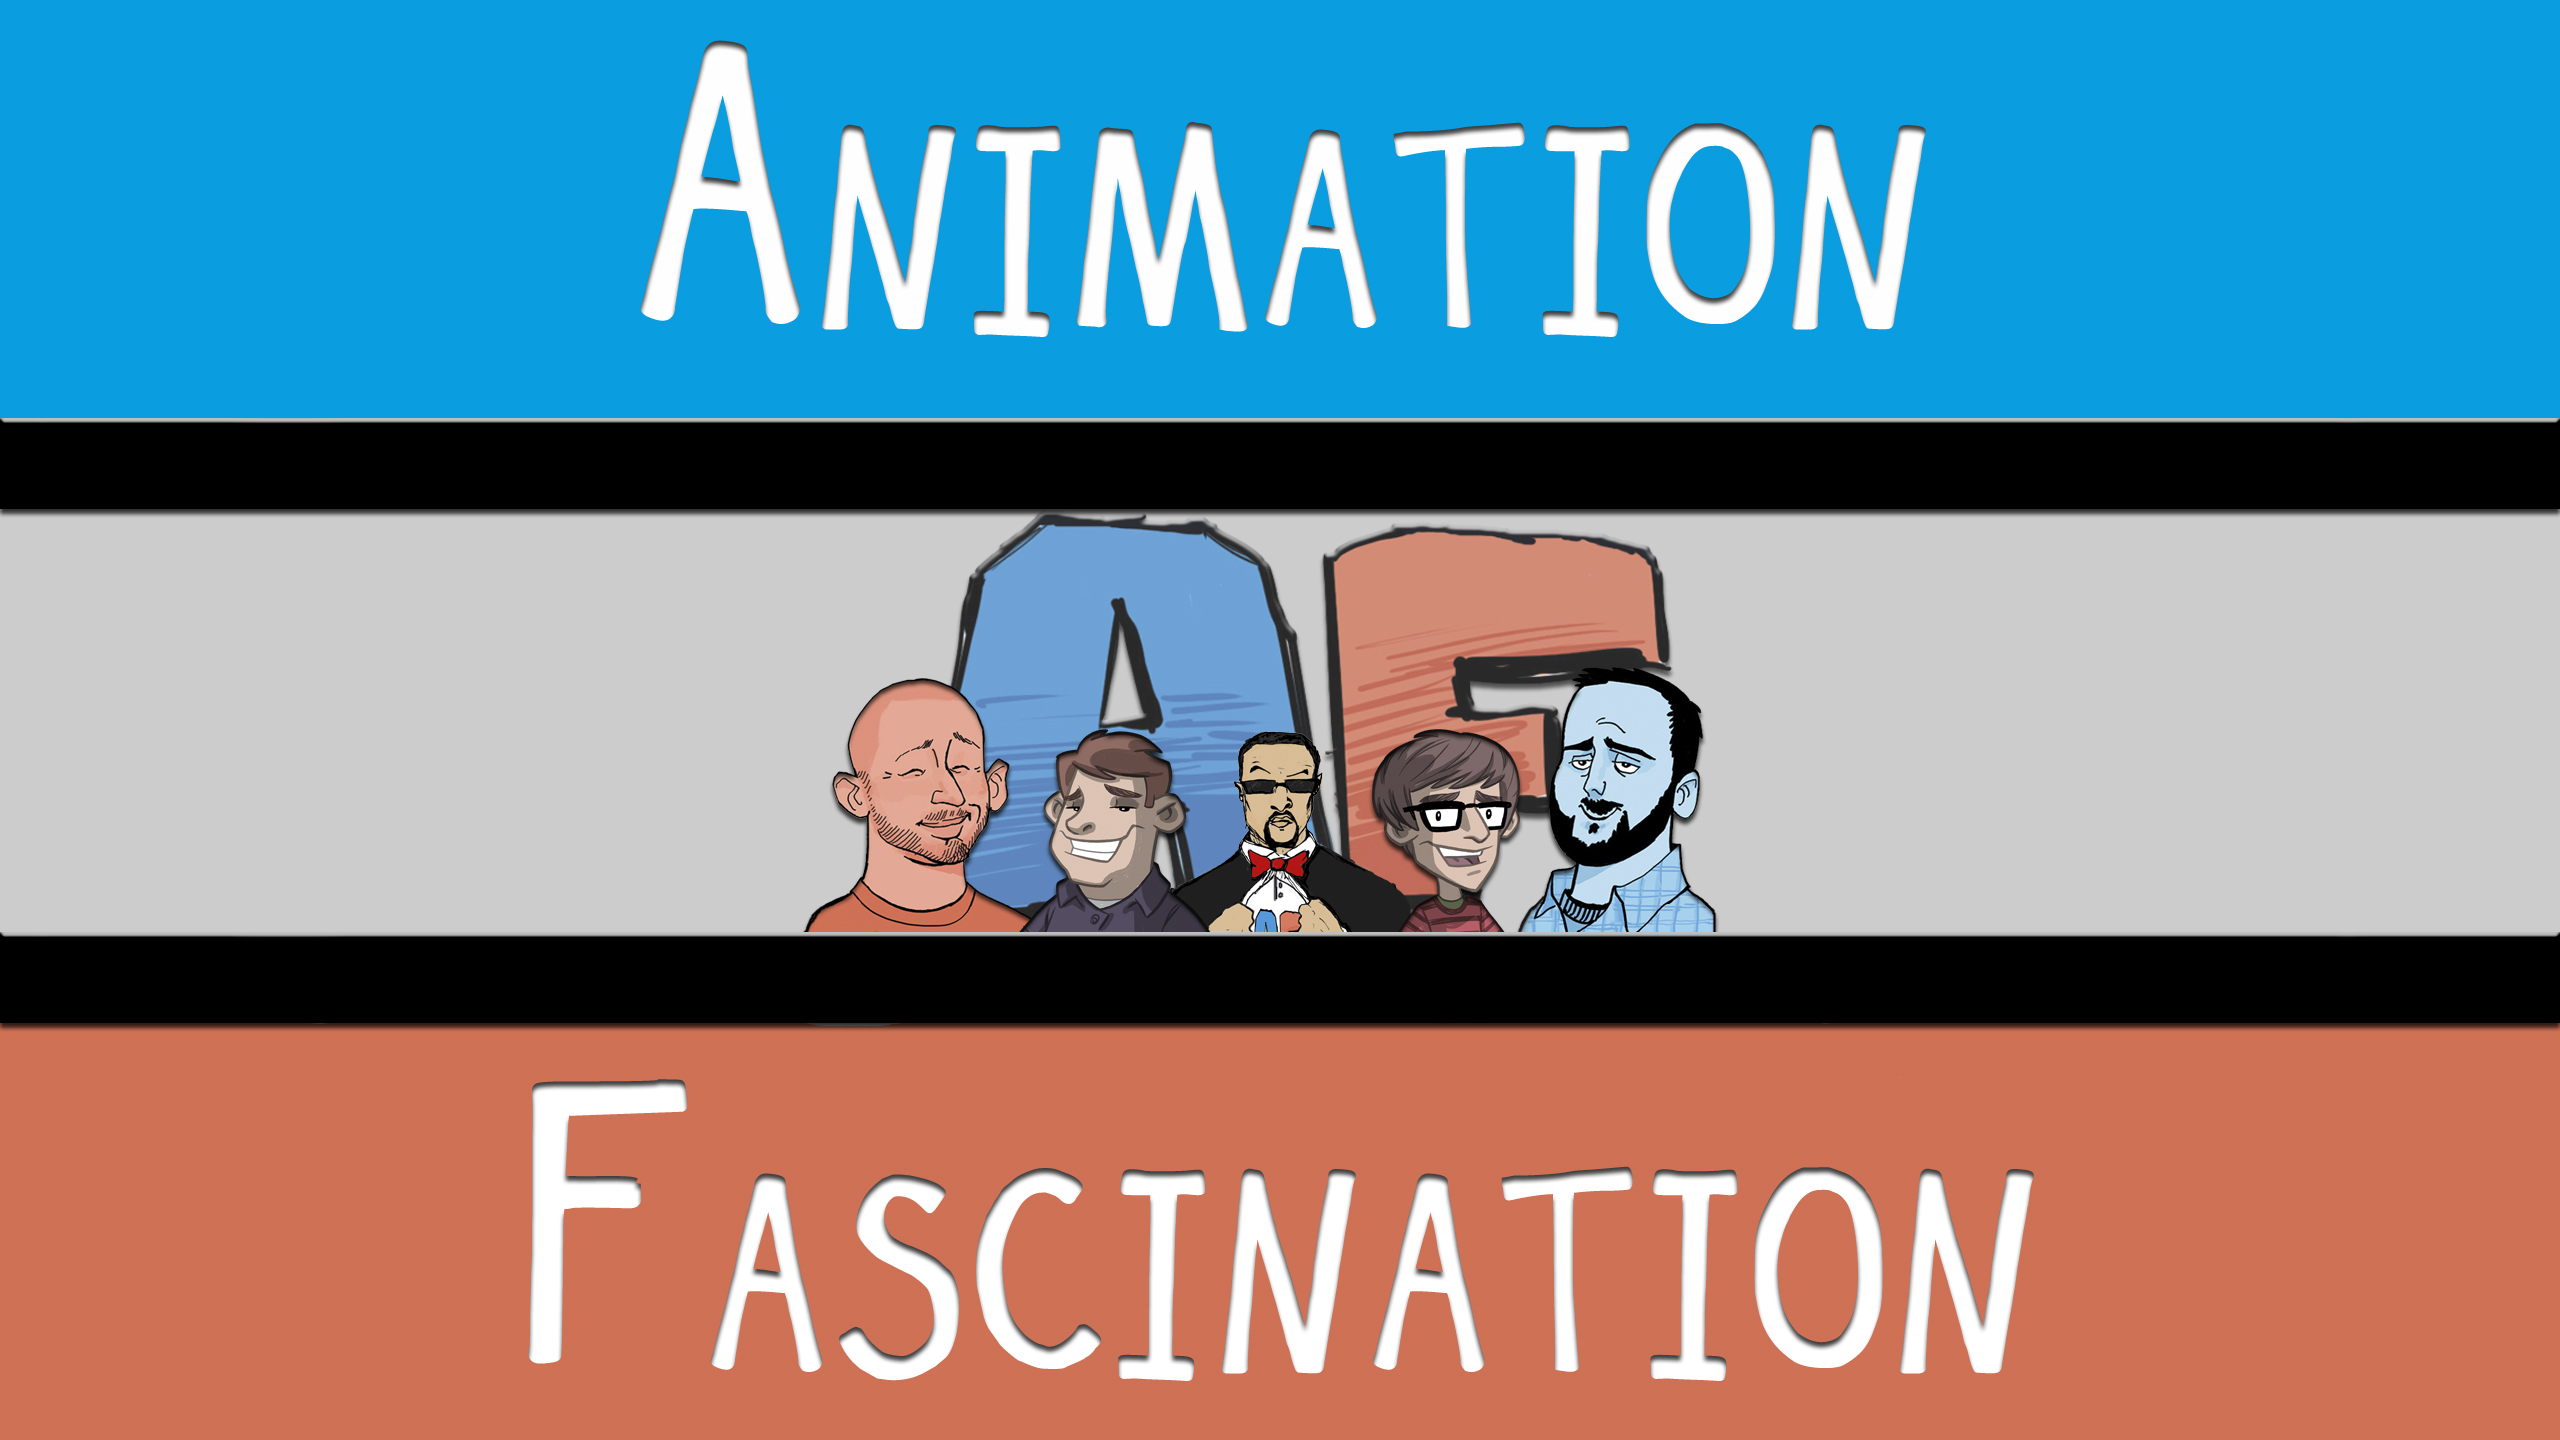 an essay on my fascination with animation Hayao miyazaki essay through his animation career that has spanned miyazaki created a world full of the fascination with aircraft and flight which.